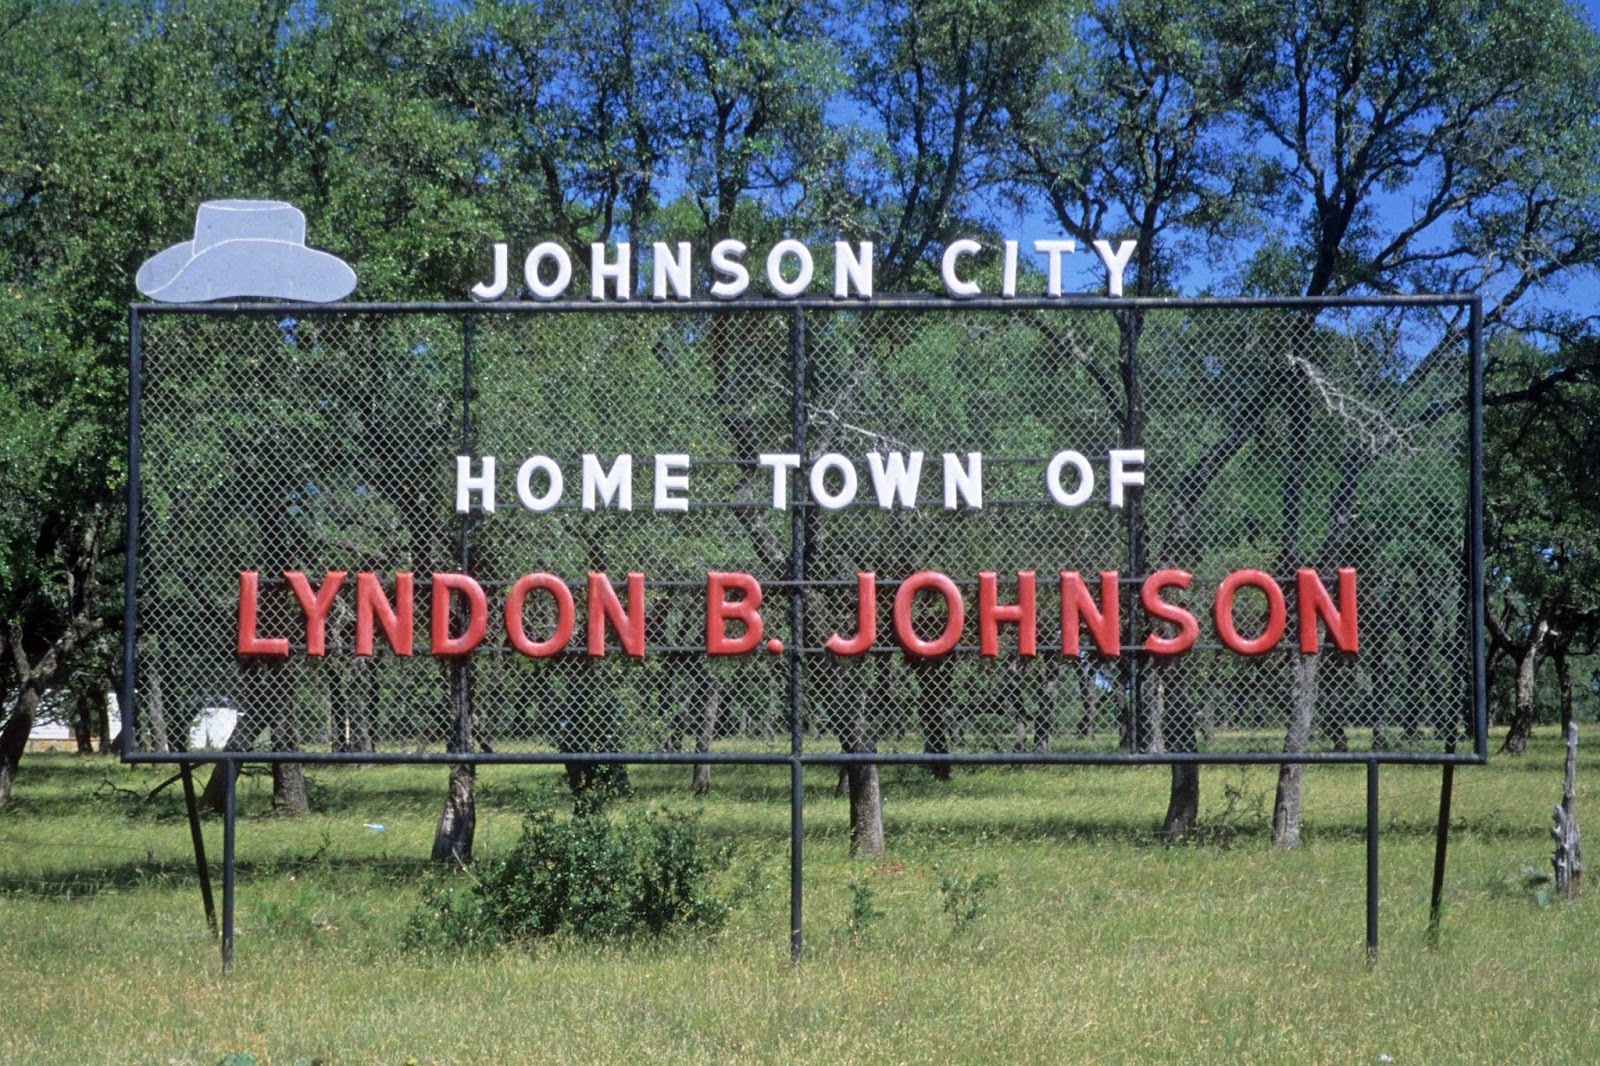 Johnson City (TX) United States  City new picture : ... sign welcome to johnson city texas 2003 home town of lyndon b johnson